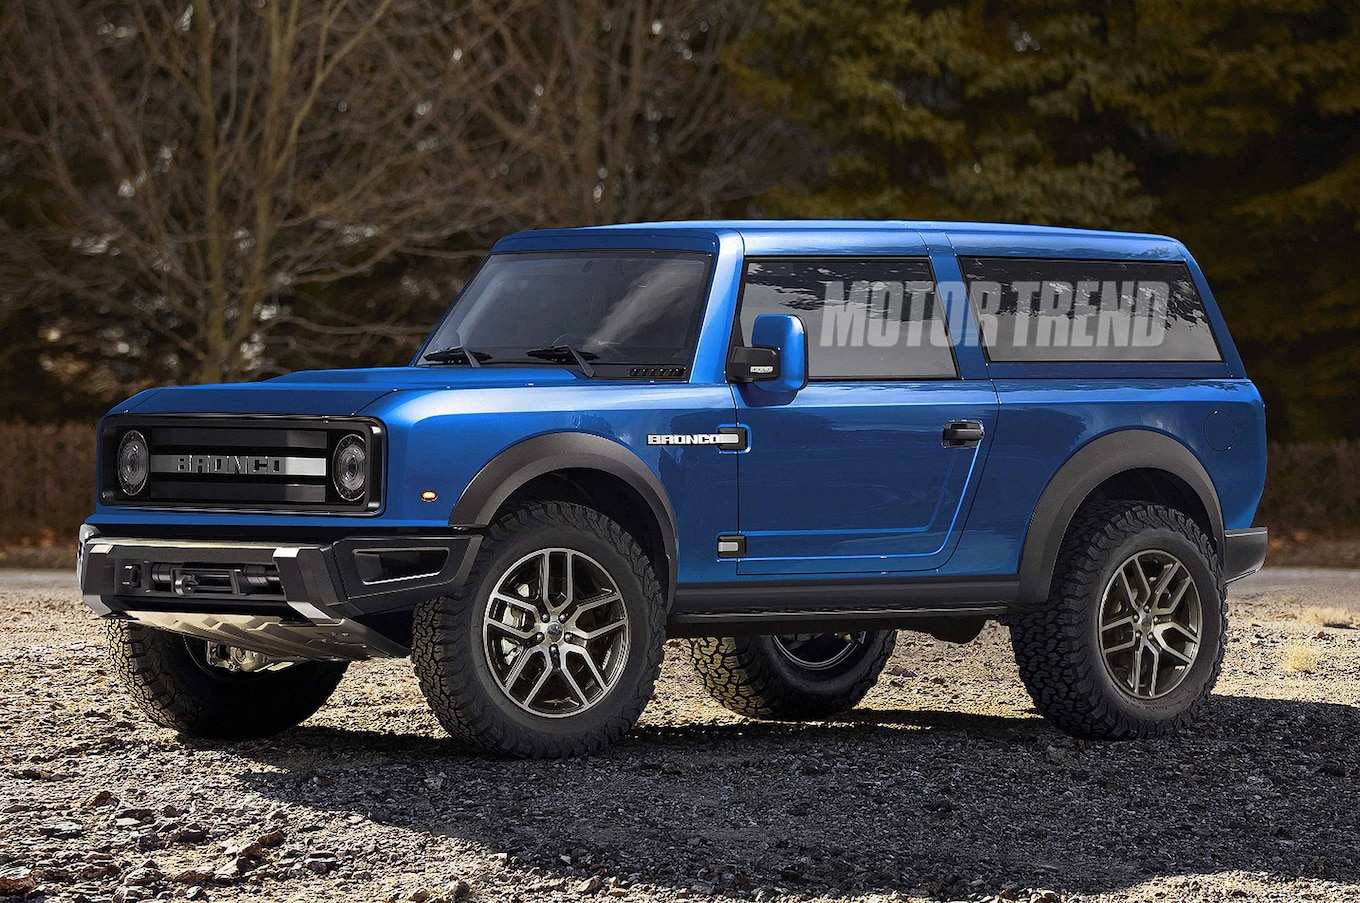 93 New Pictures Of The 2020 Ford Bronco Rumors